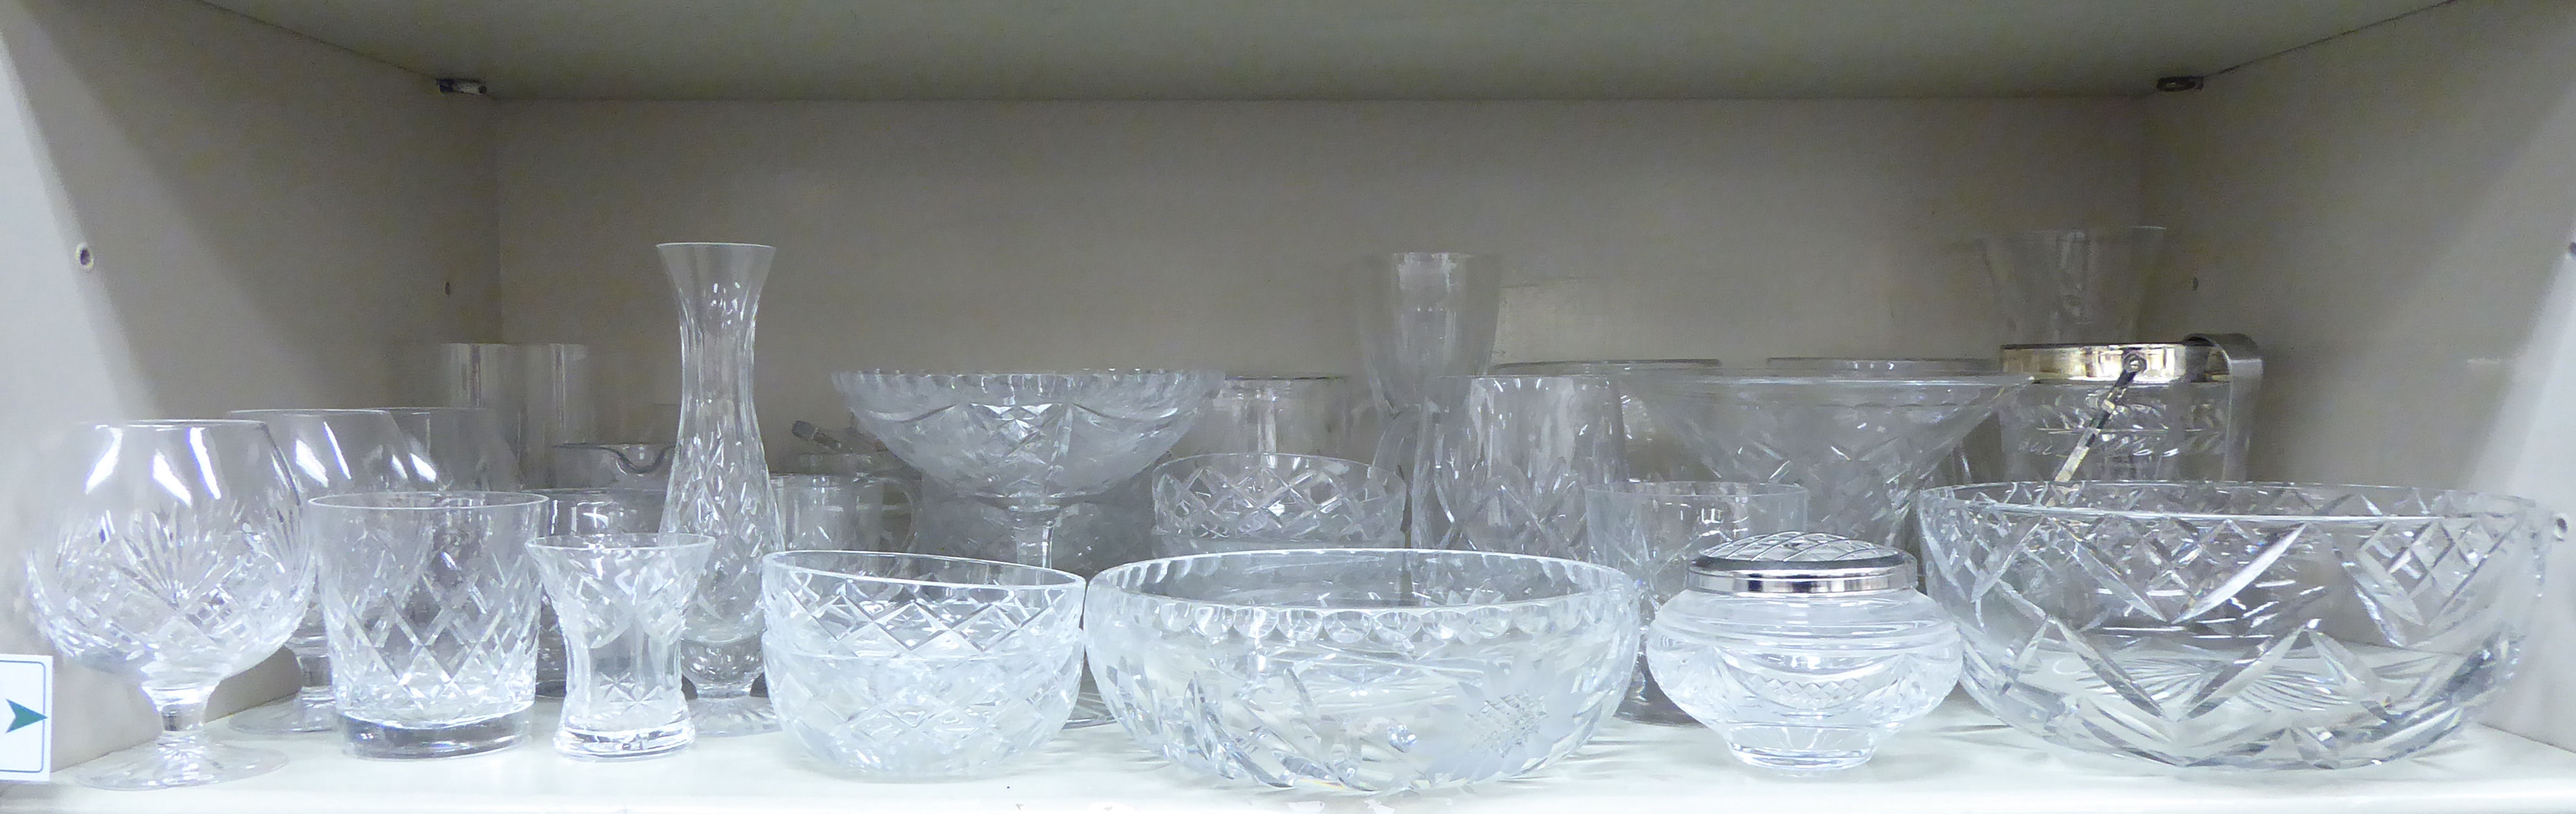 Lot 93 - Cut crystal glassware: to include tumblers,